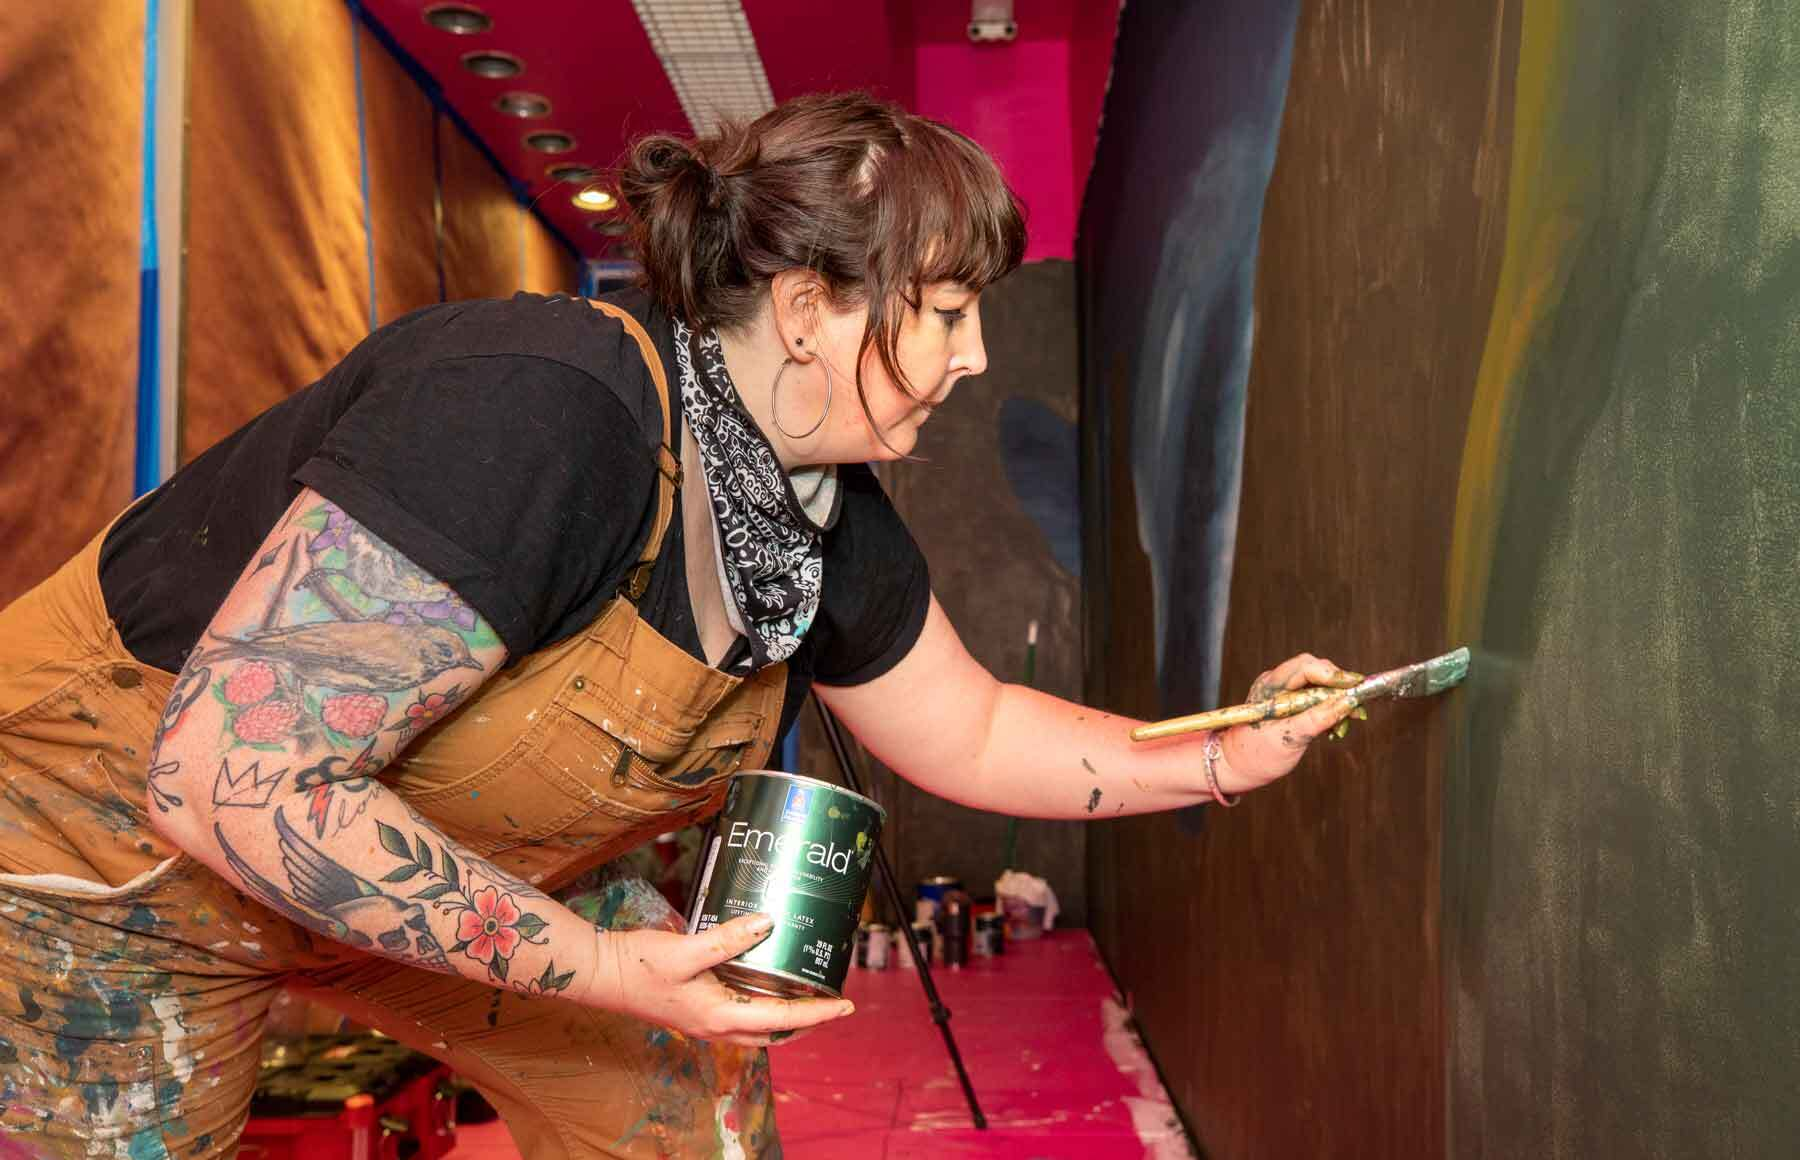 A woman painting a wall.